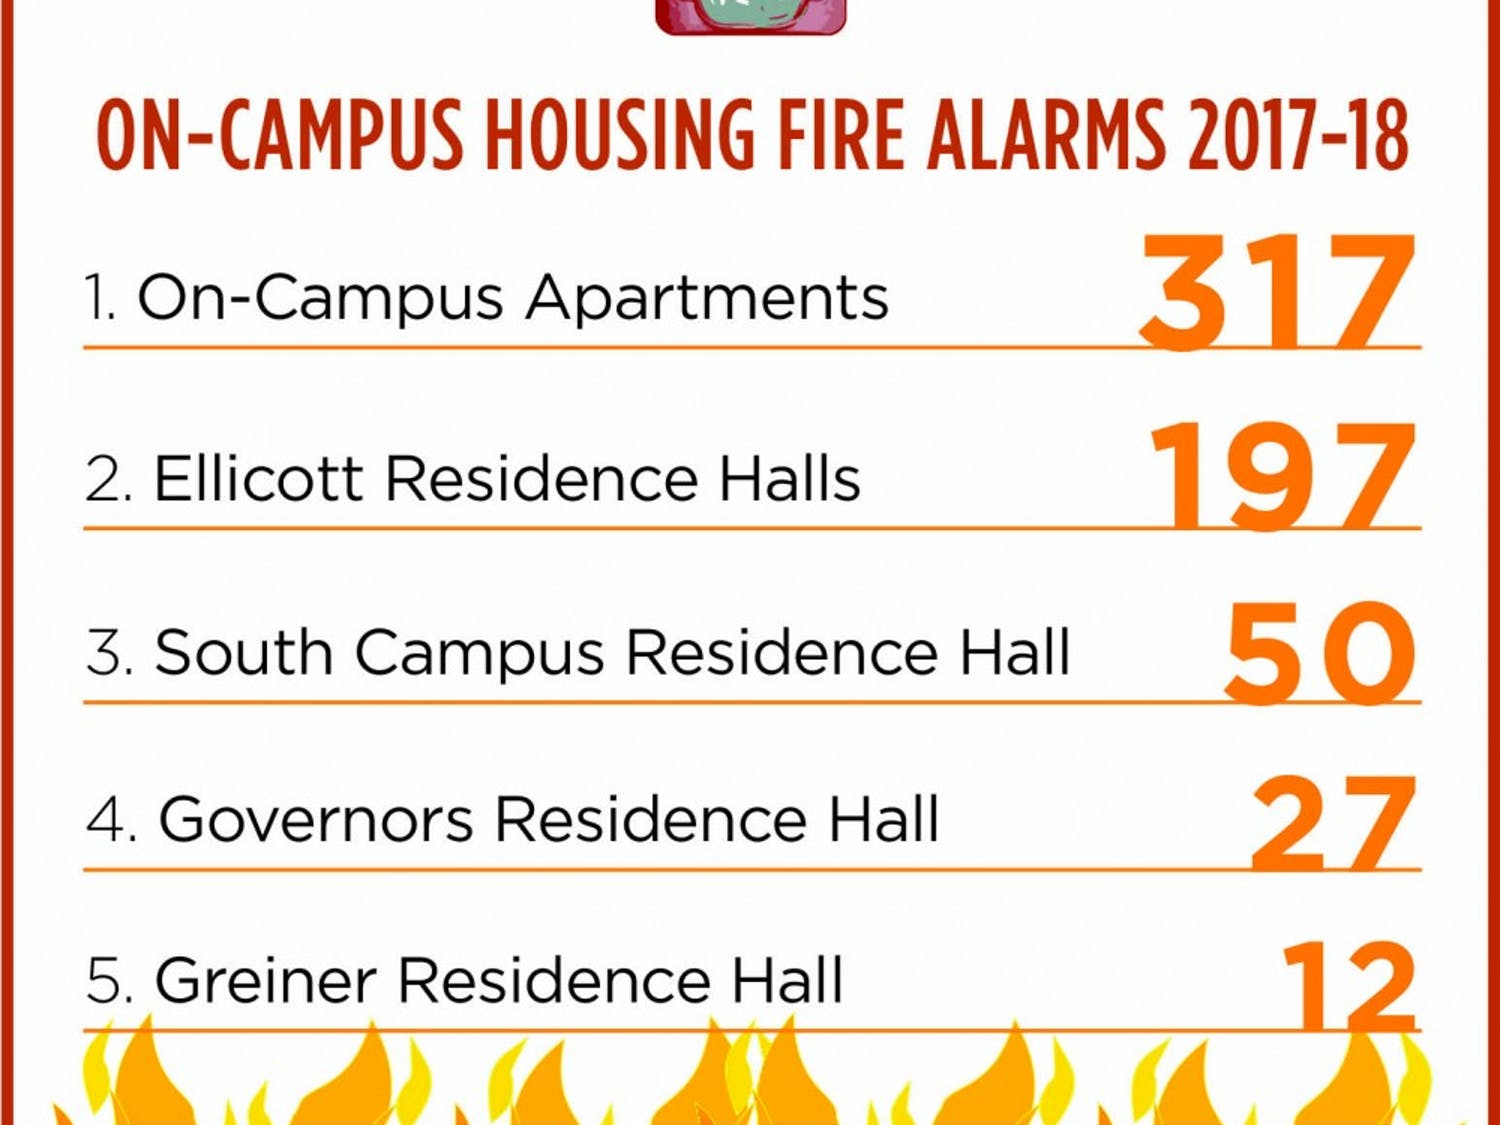 On-campus apartments make up for more than half of the fire alarms this academic year. Students living in Flint and Hadley shared their concerns with the increase in fire alarms in their complexes.